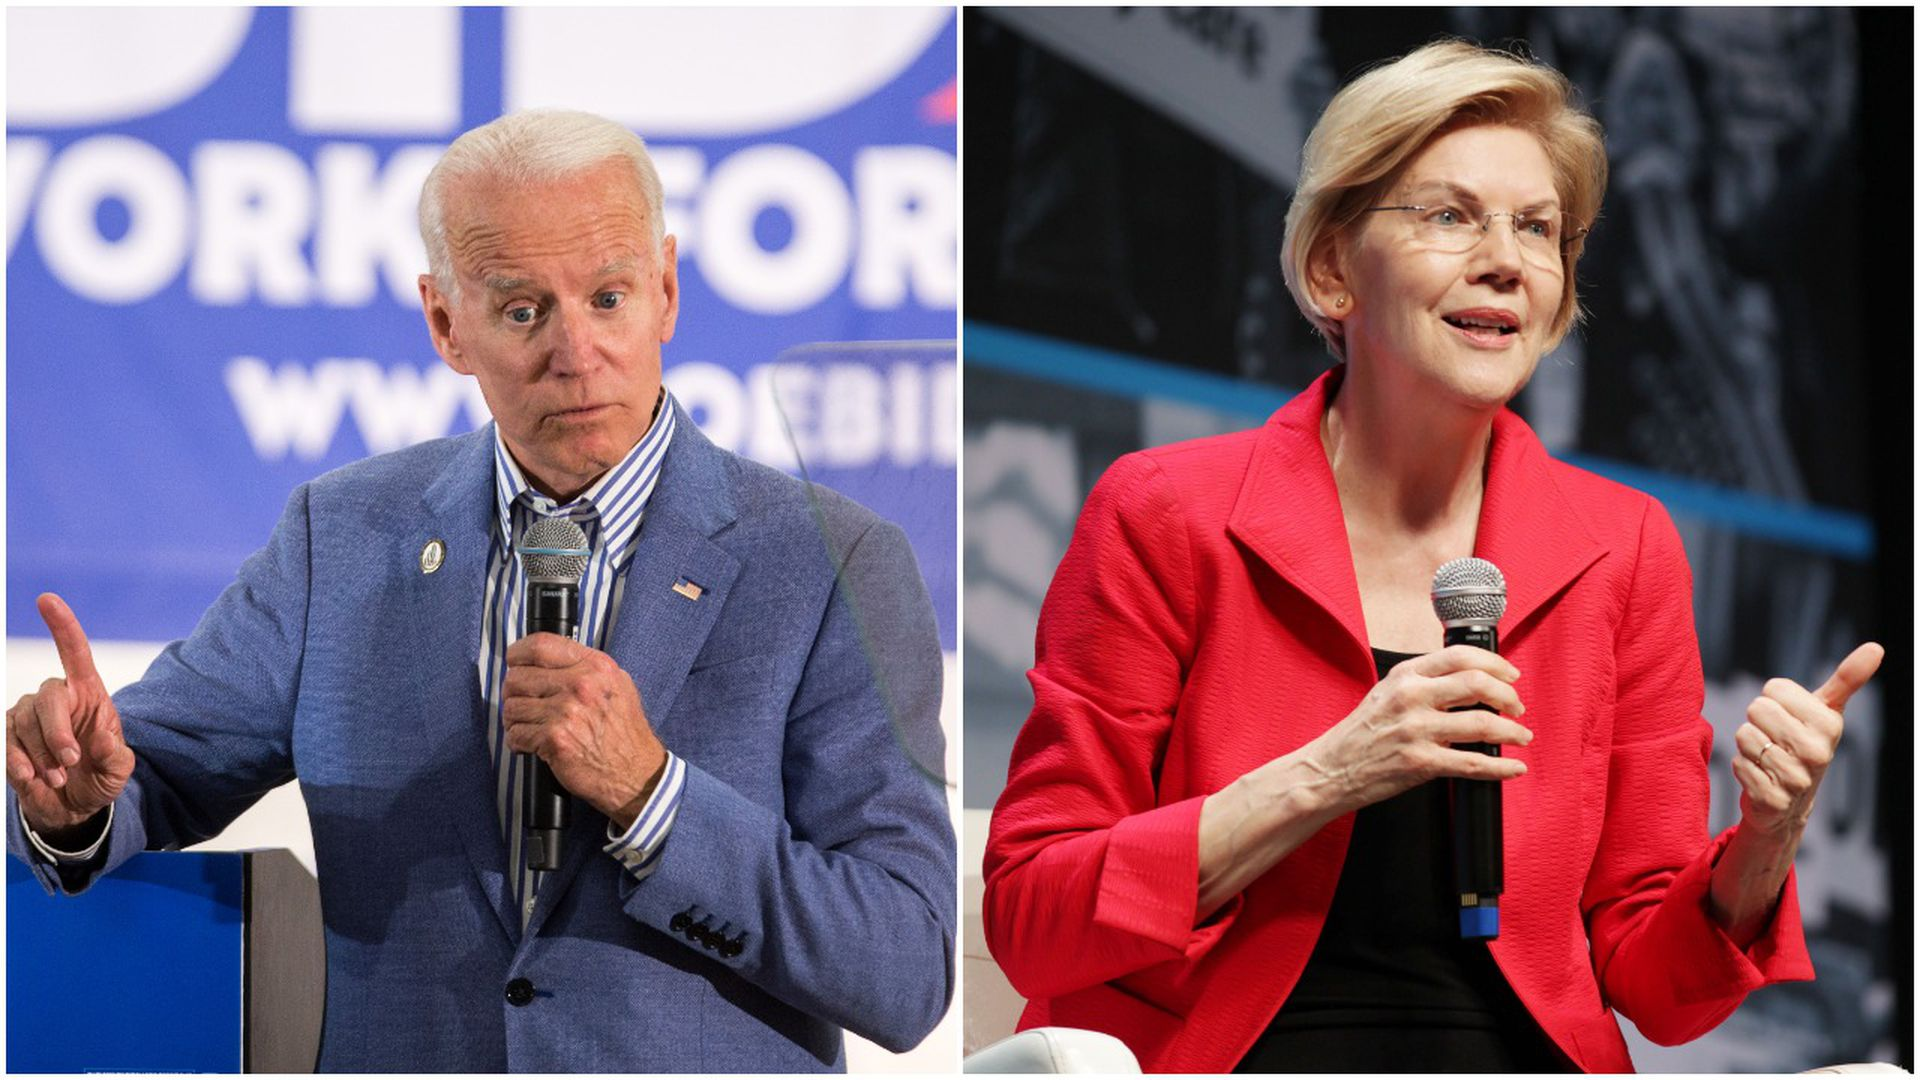 This image is a split screen of Elizabeth Warren and Joe Biden, who are both standing and speaking into microphones.